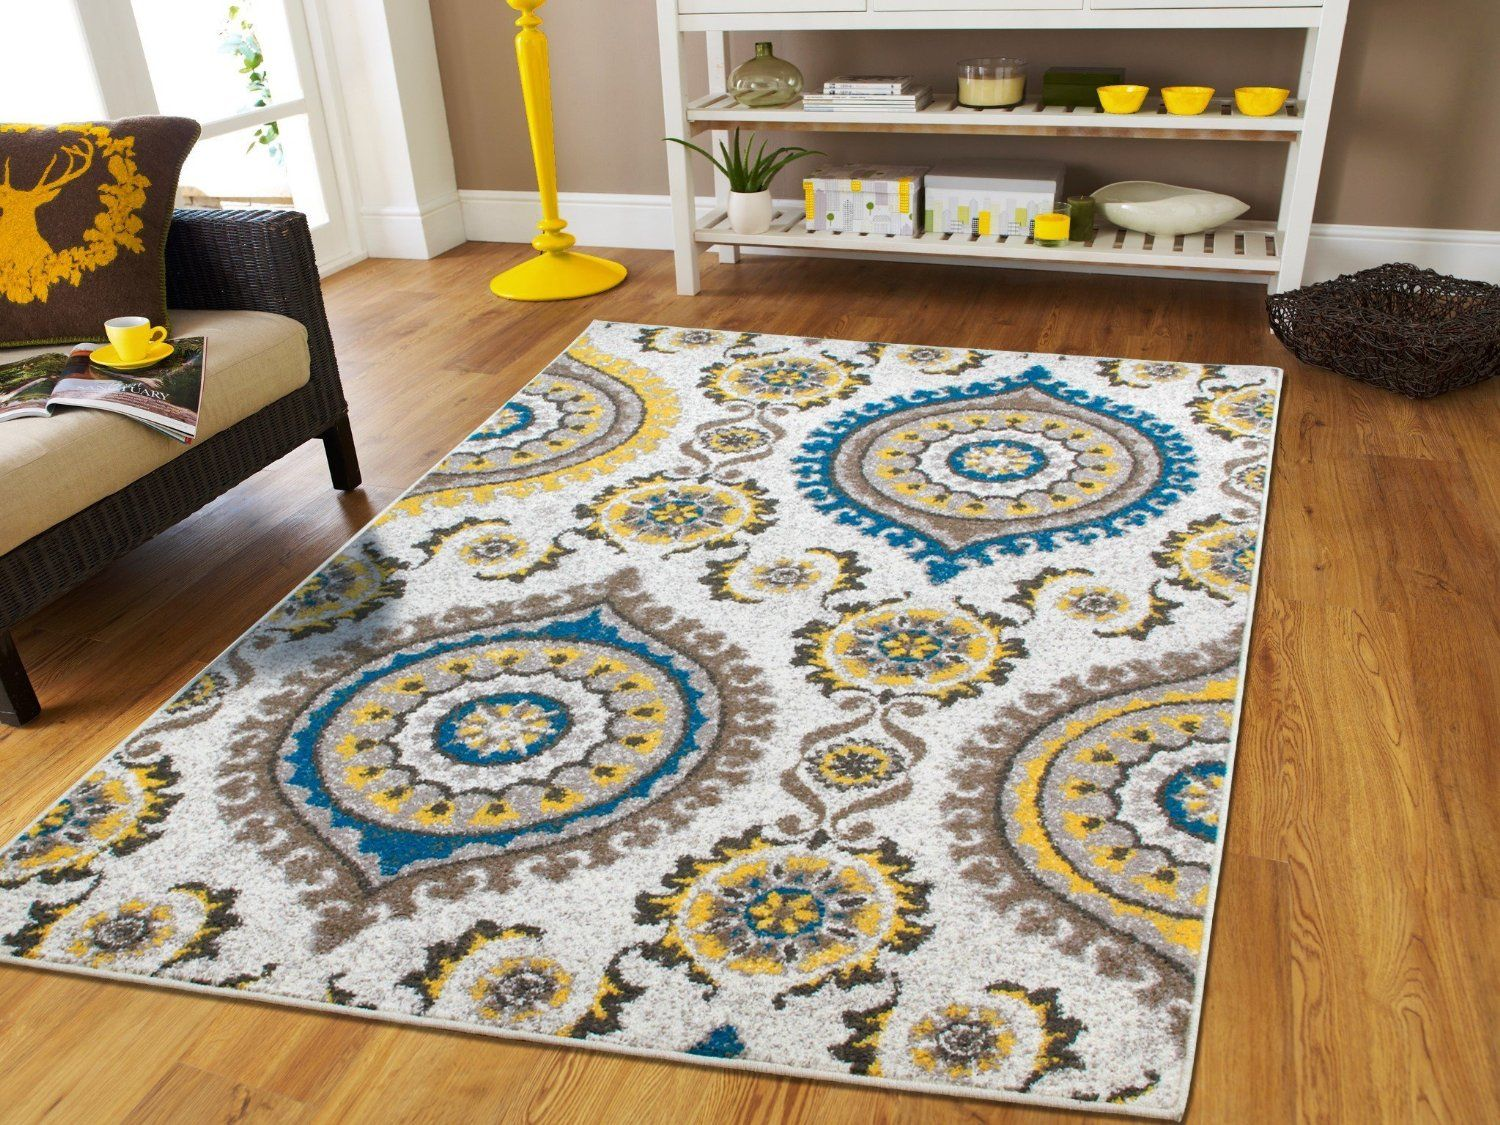 Amazon New Modern Floor Rugs For Living Room Large Area Blue Gray Cream Flowers 8x11 Abstract Carpet With Circles Diamond Shape 8x10